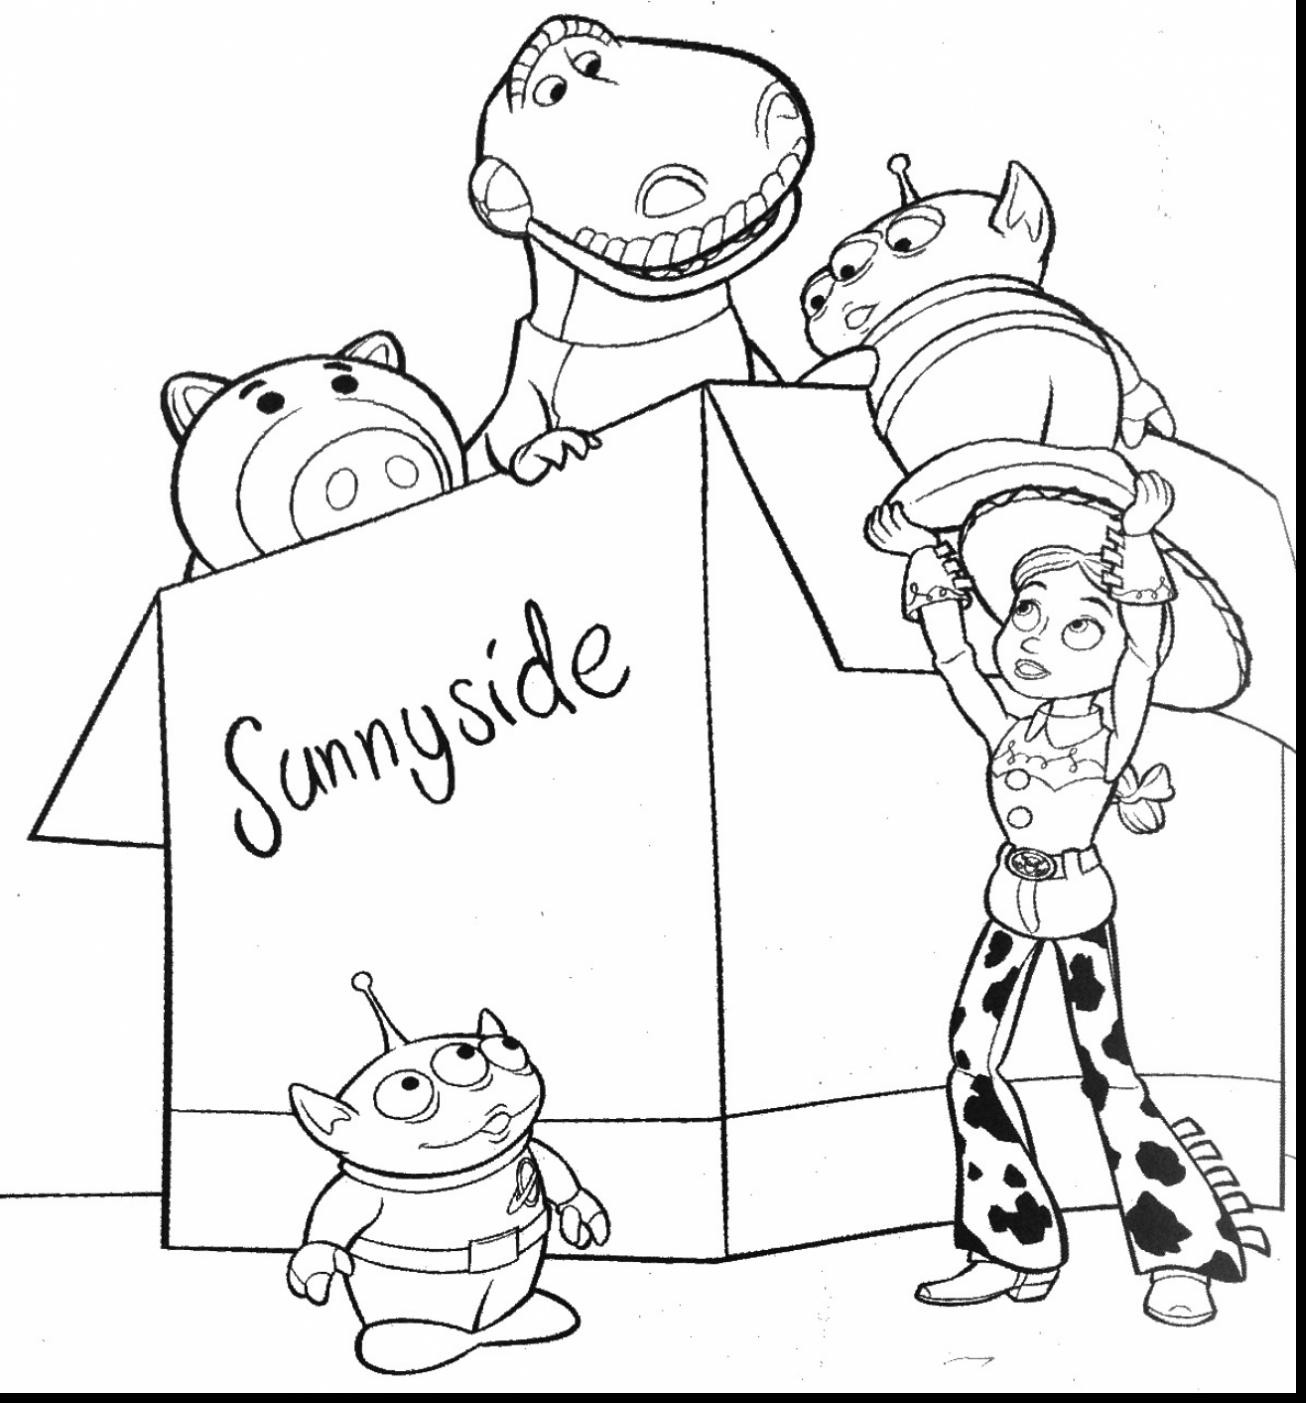 buzz toy story 4 coloring pages woody drawing at getdrawings free download buzz pages story toy 4 coloring